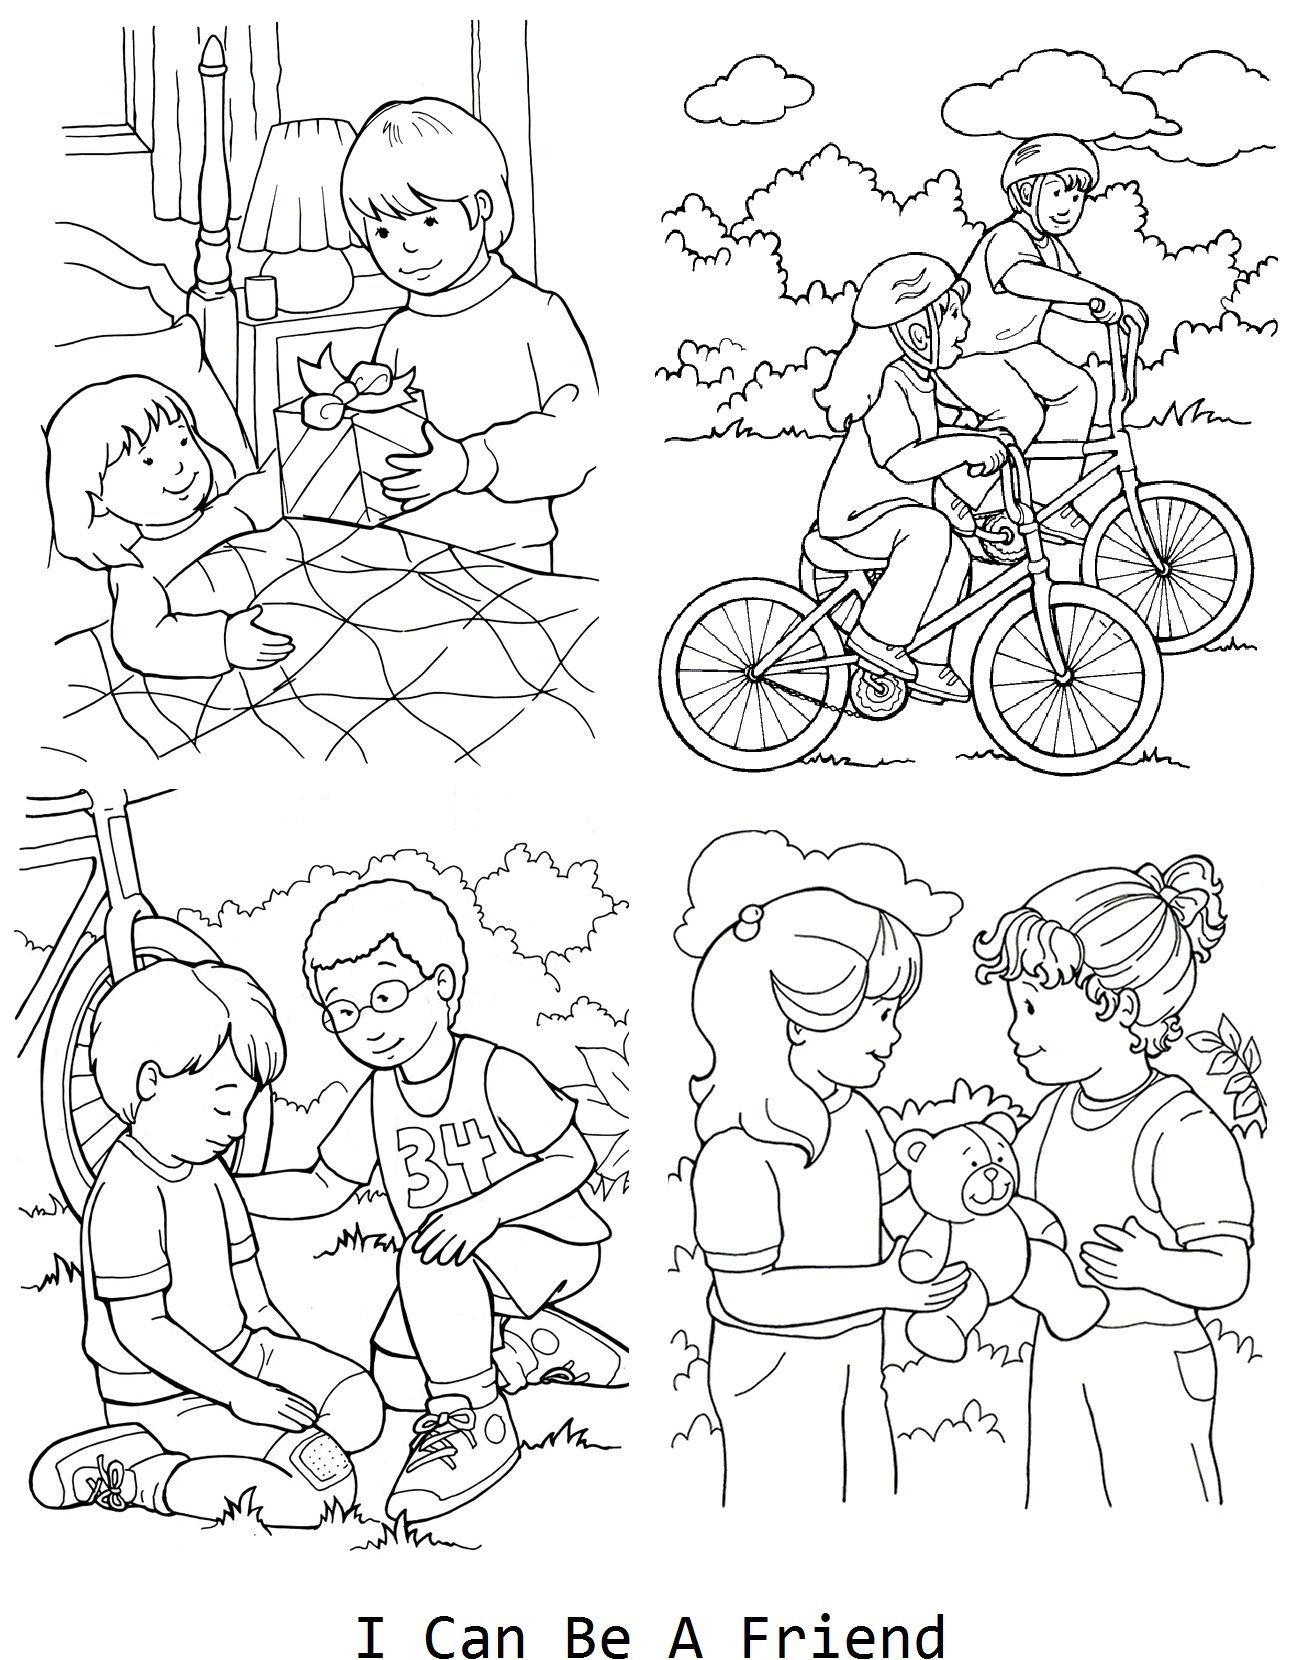 I can be a friend coloring page for lesson 33 | LDS Primary Lessons ...